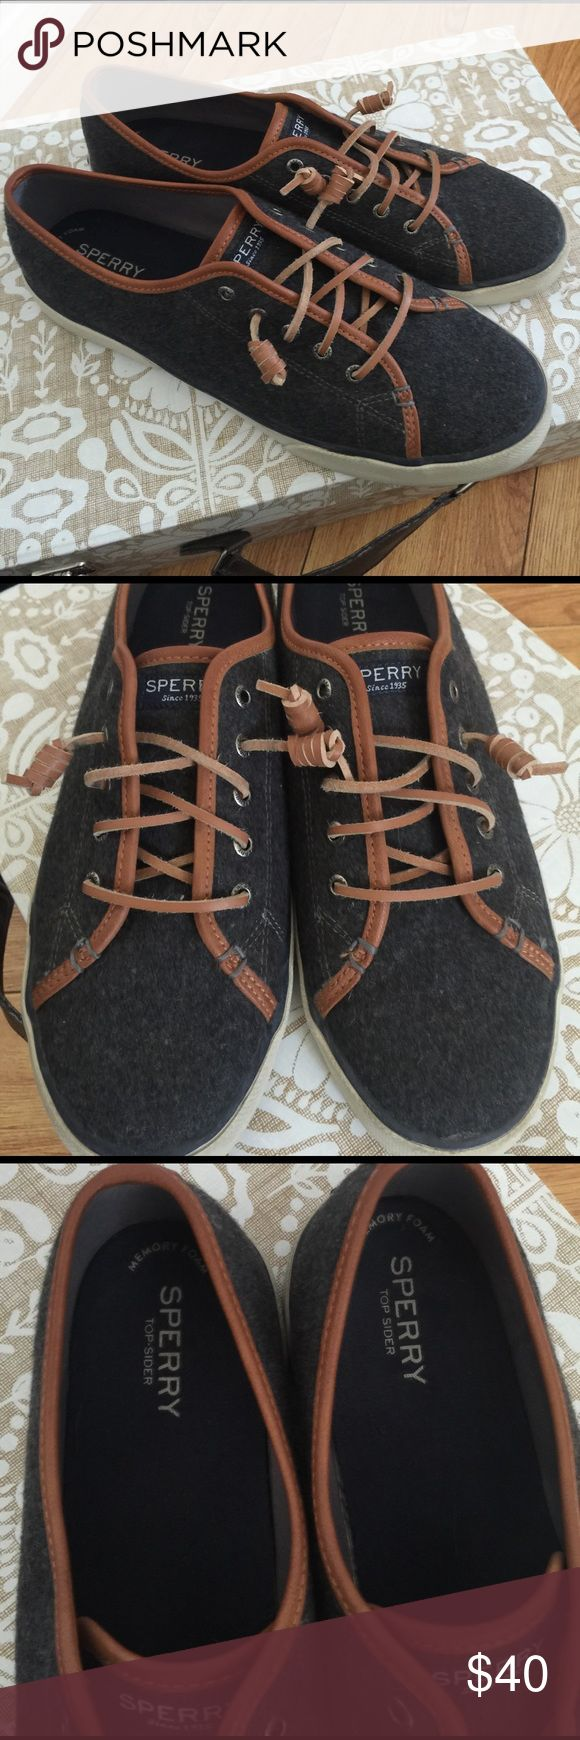 Sperry Top Sider wool tennis 11M Sorry Top Siders wool tennis shoes, size 11M. Wool material mix with leather accents. P effect everyday tennis shoes. Gently used, mostly shows wear on bottom as seen in pics. Other than that they are in very good condition. OFFERS WELCOME, BUNDLES 15% OFF, ❌TRADES❌ Sperry Top-Sider Shoes Sneakers